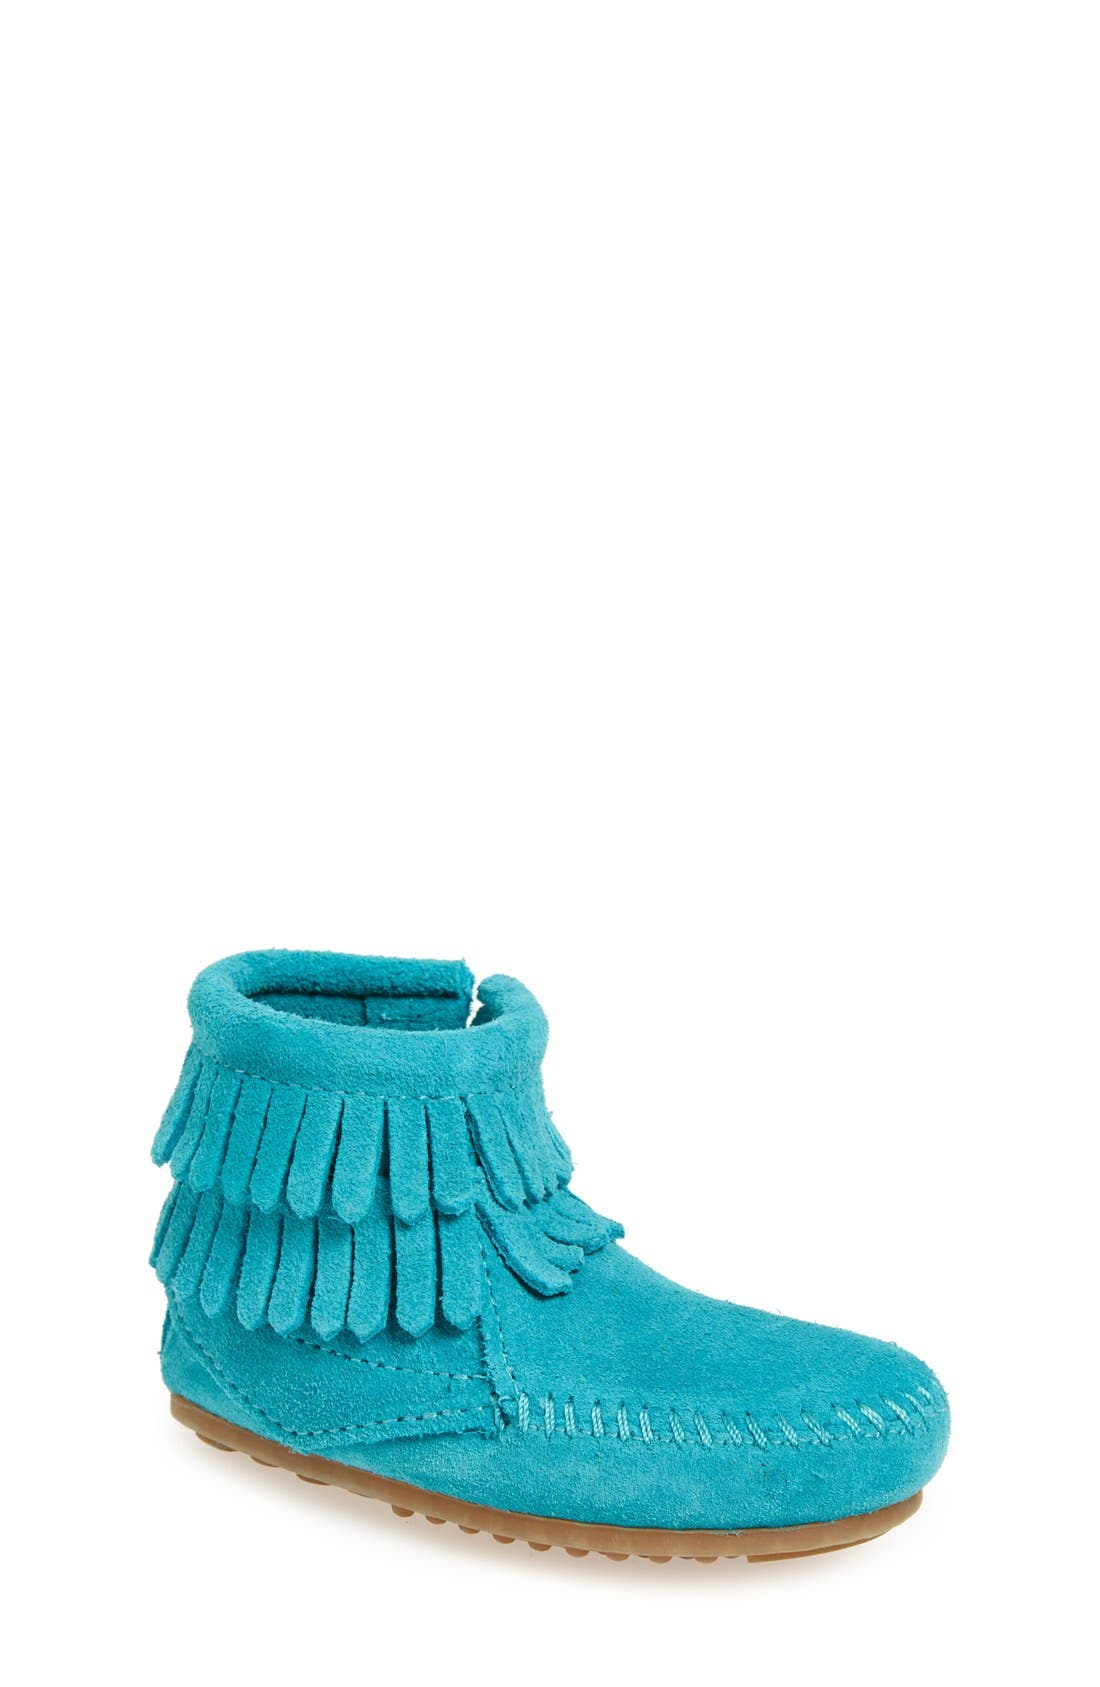 Alternate Image 1 Selected - Minnetonka 'Double Fringe' Boot (Walker, Toddler, Little Kid & Big Kid)